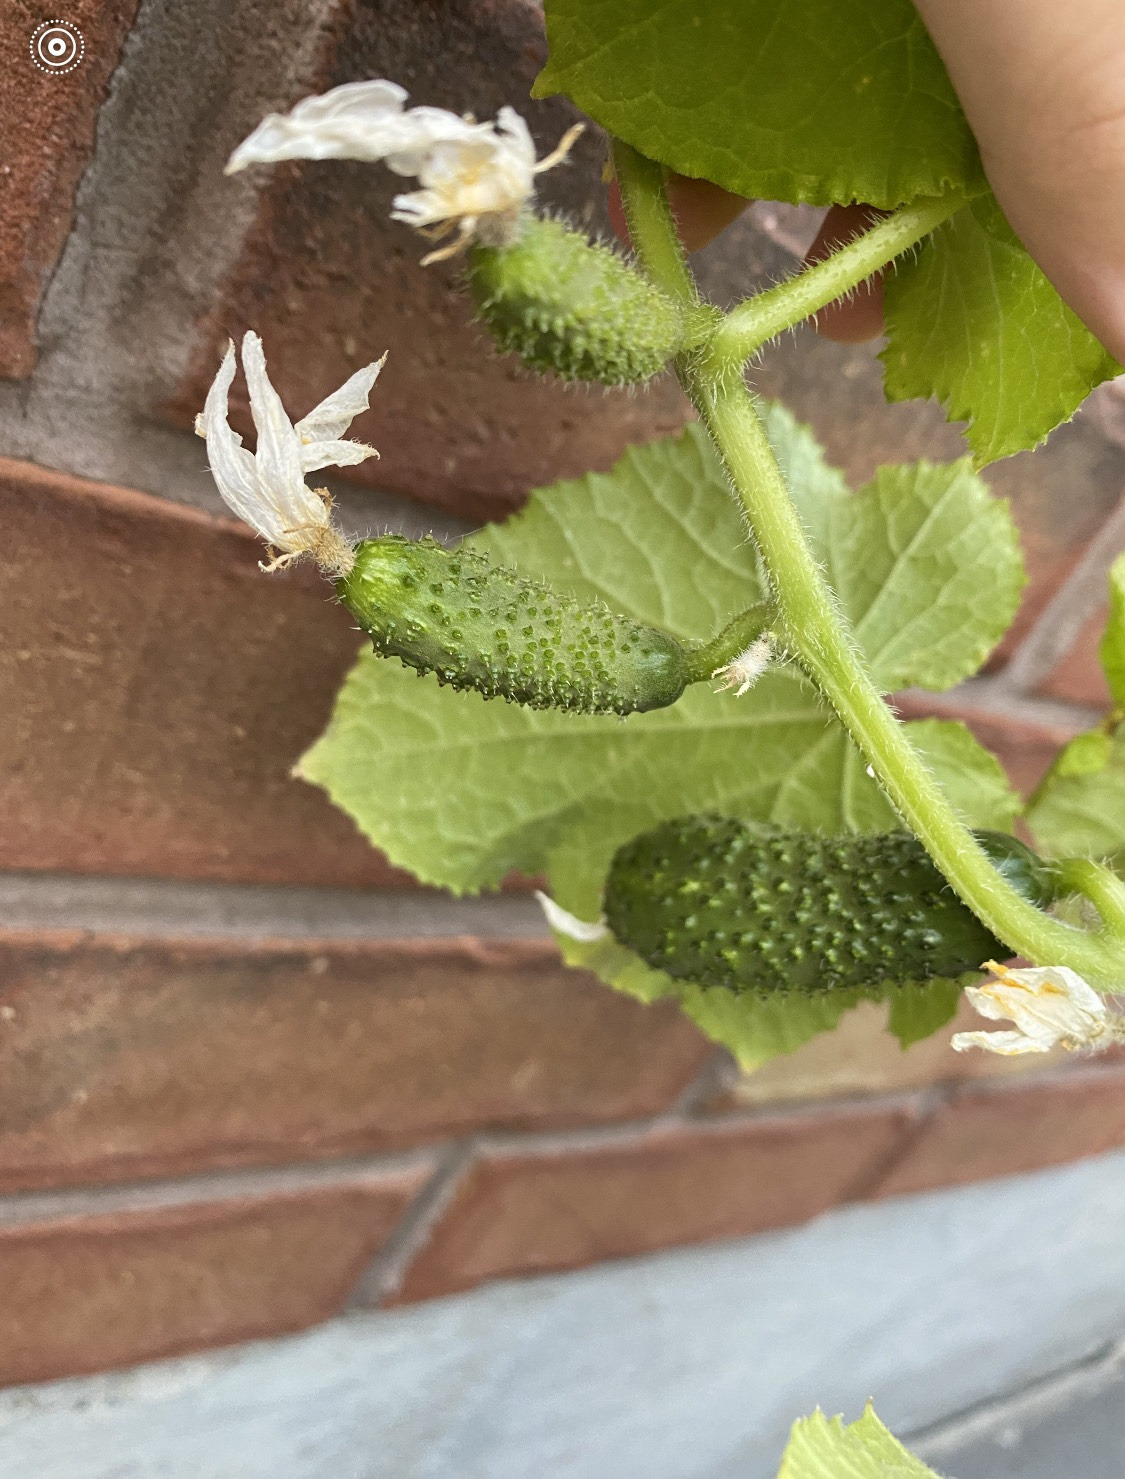 Cucumber form on plant